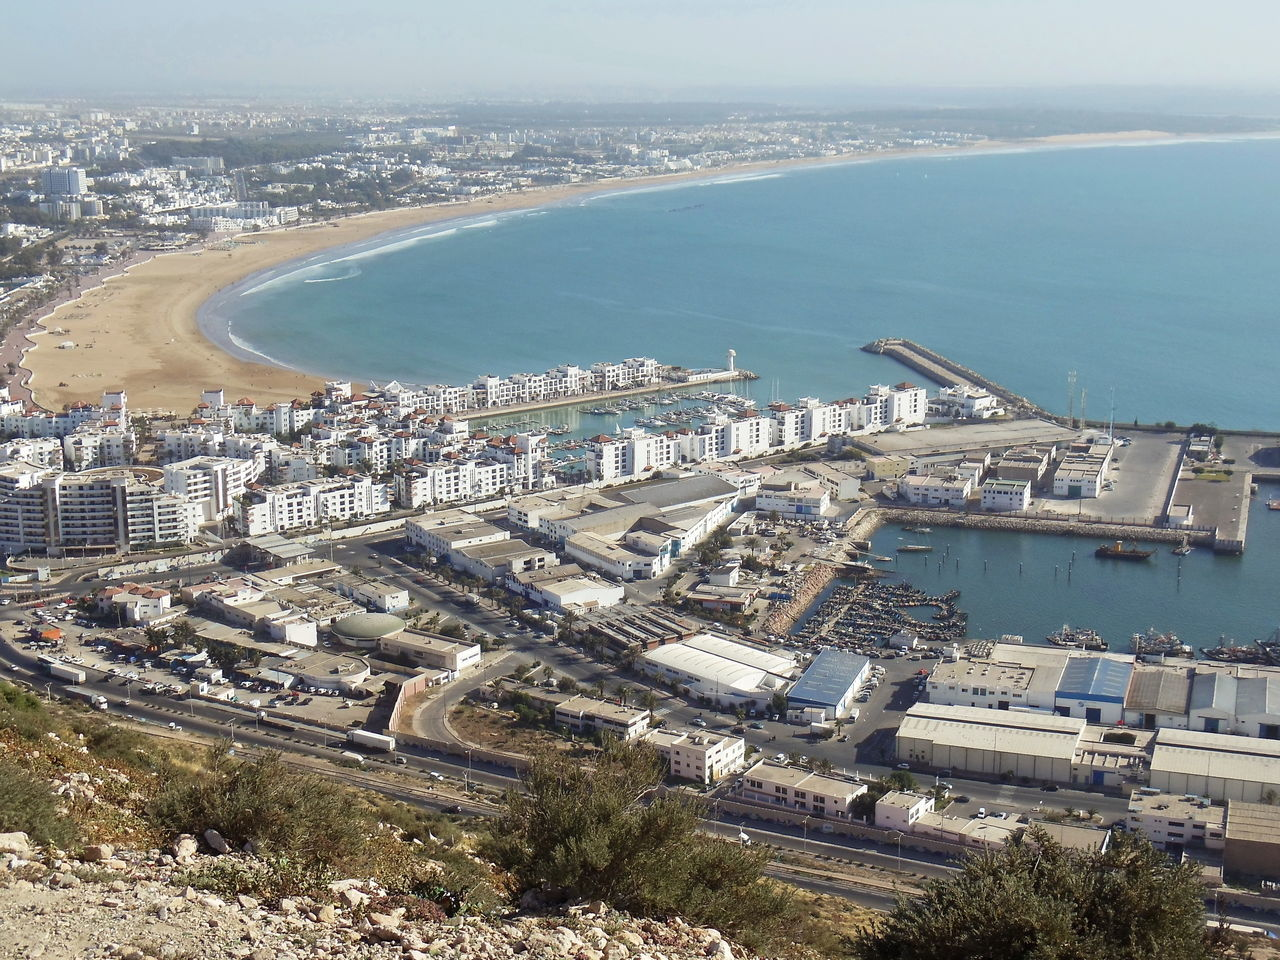 The view at Agadir, Morocco Aerial View Agadir City Architecture Bay Building Exterior Built Structure City Cityscape Coastline Day Flying High High Angle View Morocco MoroccoTrip Nautical Vessel No People Outdoors Port Sea Sky Travel Destinations Water